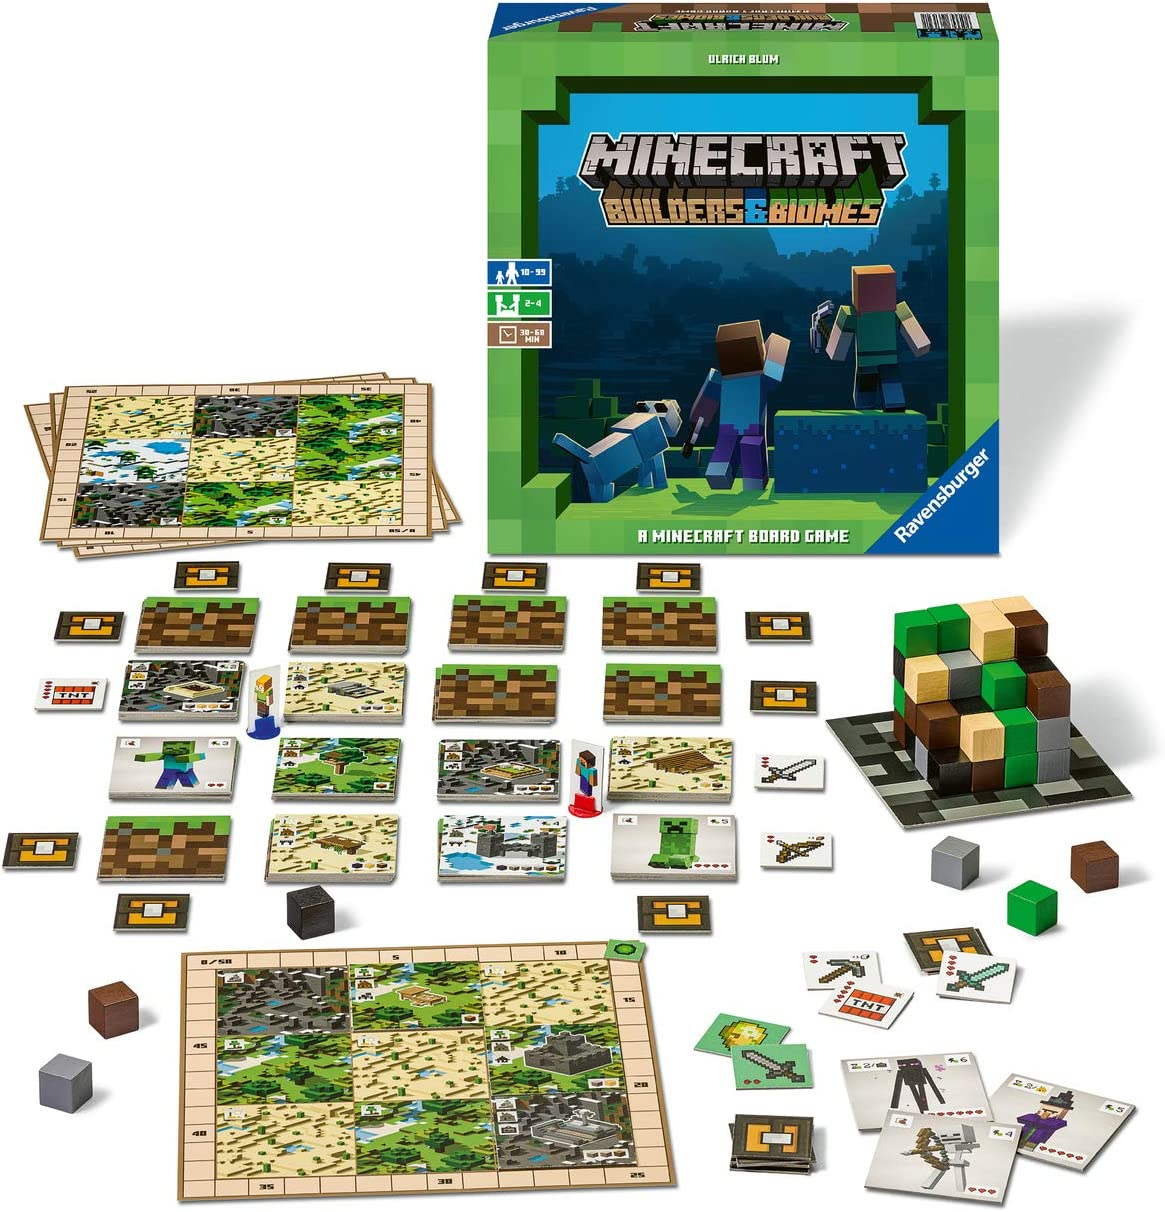 Daily Deals On Family Board Games Perfect For Nights In - Minecraft Strategy Game